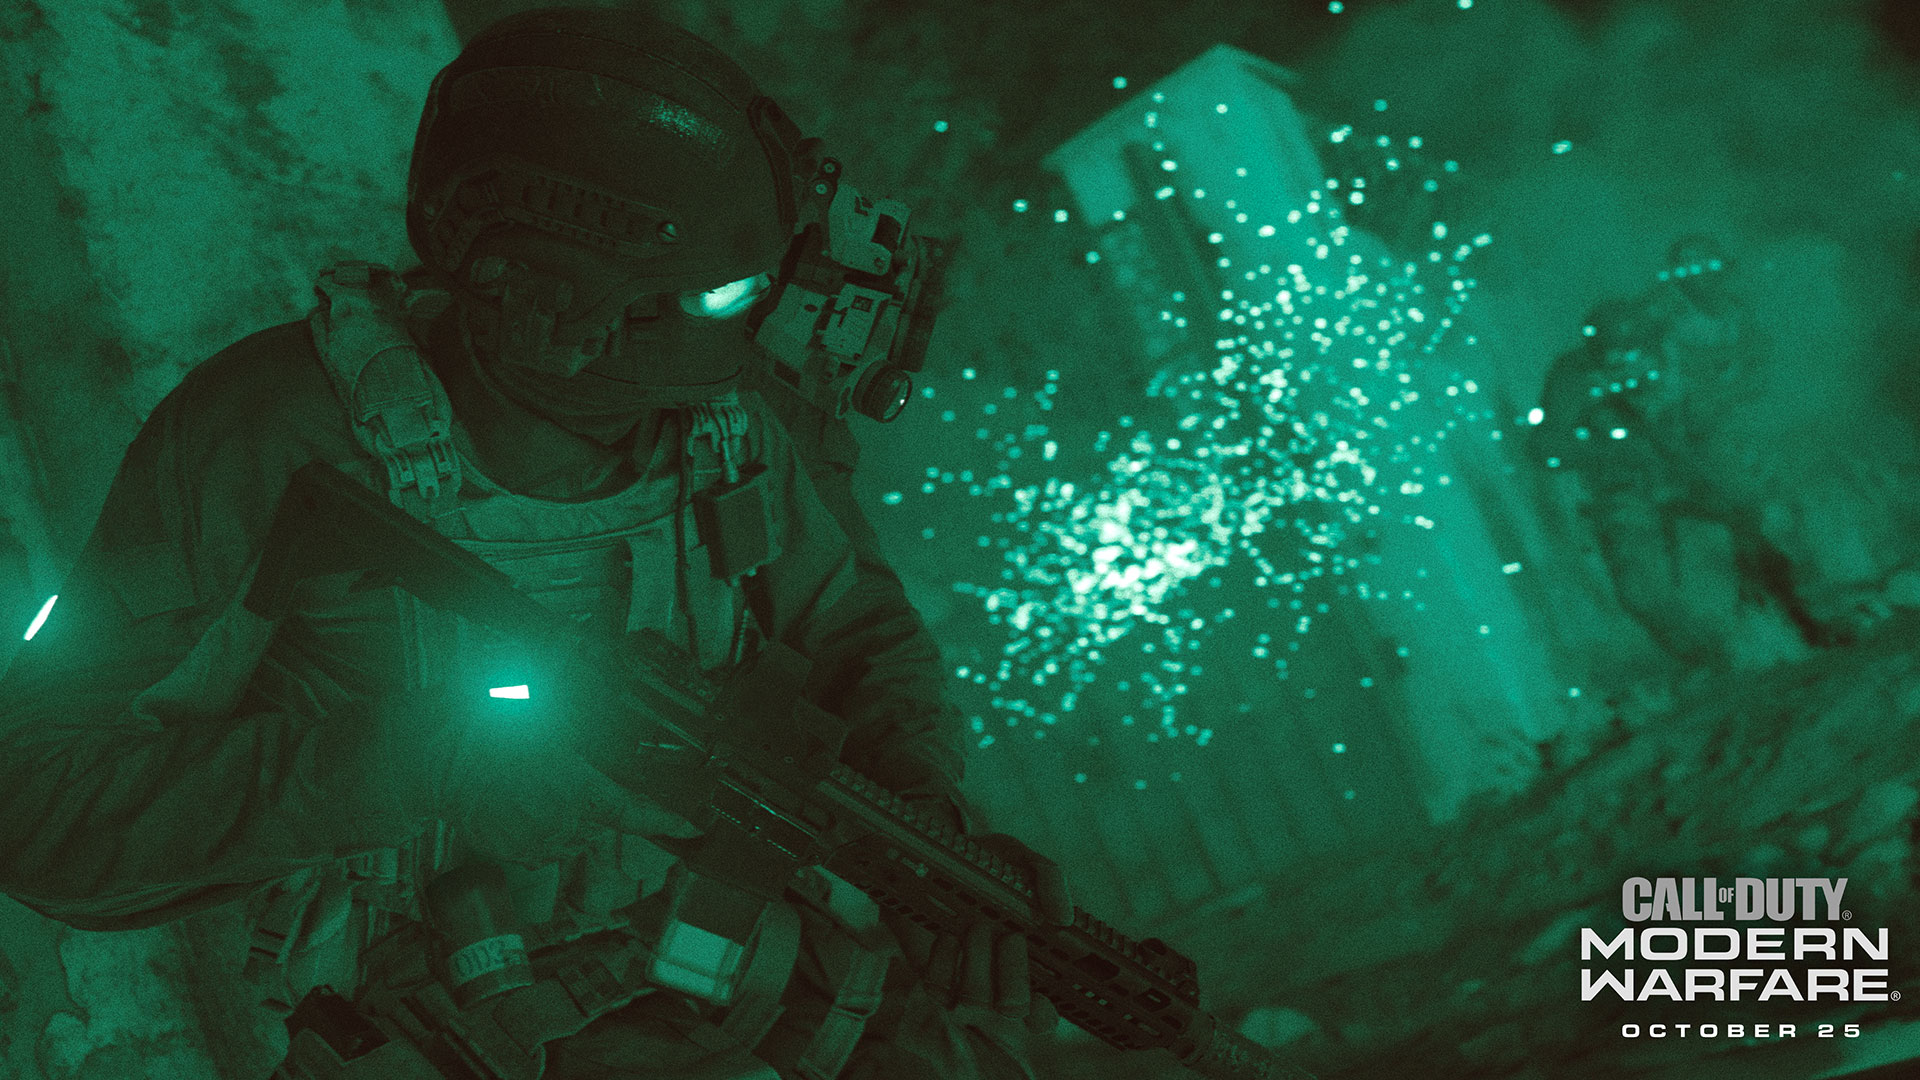 Does Call of Duty: Modern Warfare go too far, or is this a better reflection of war?